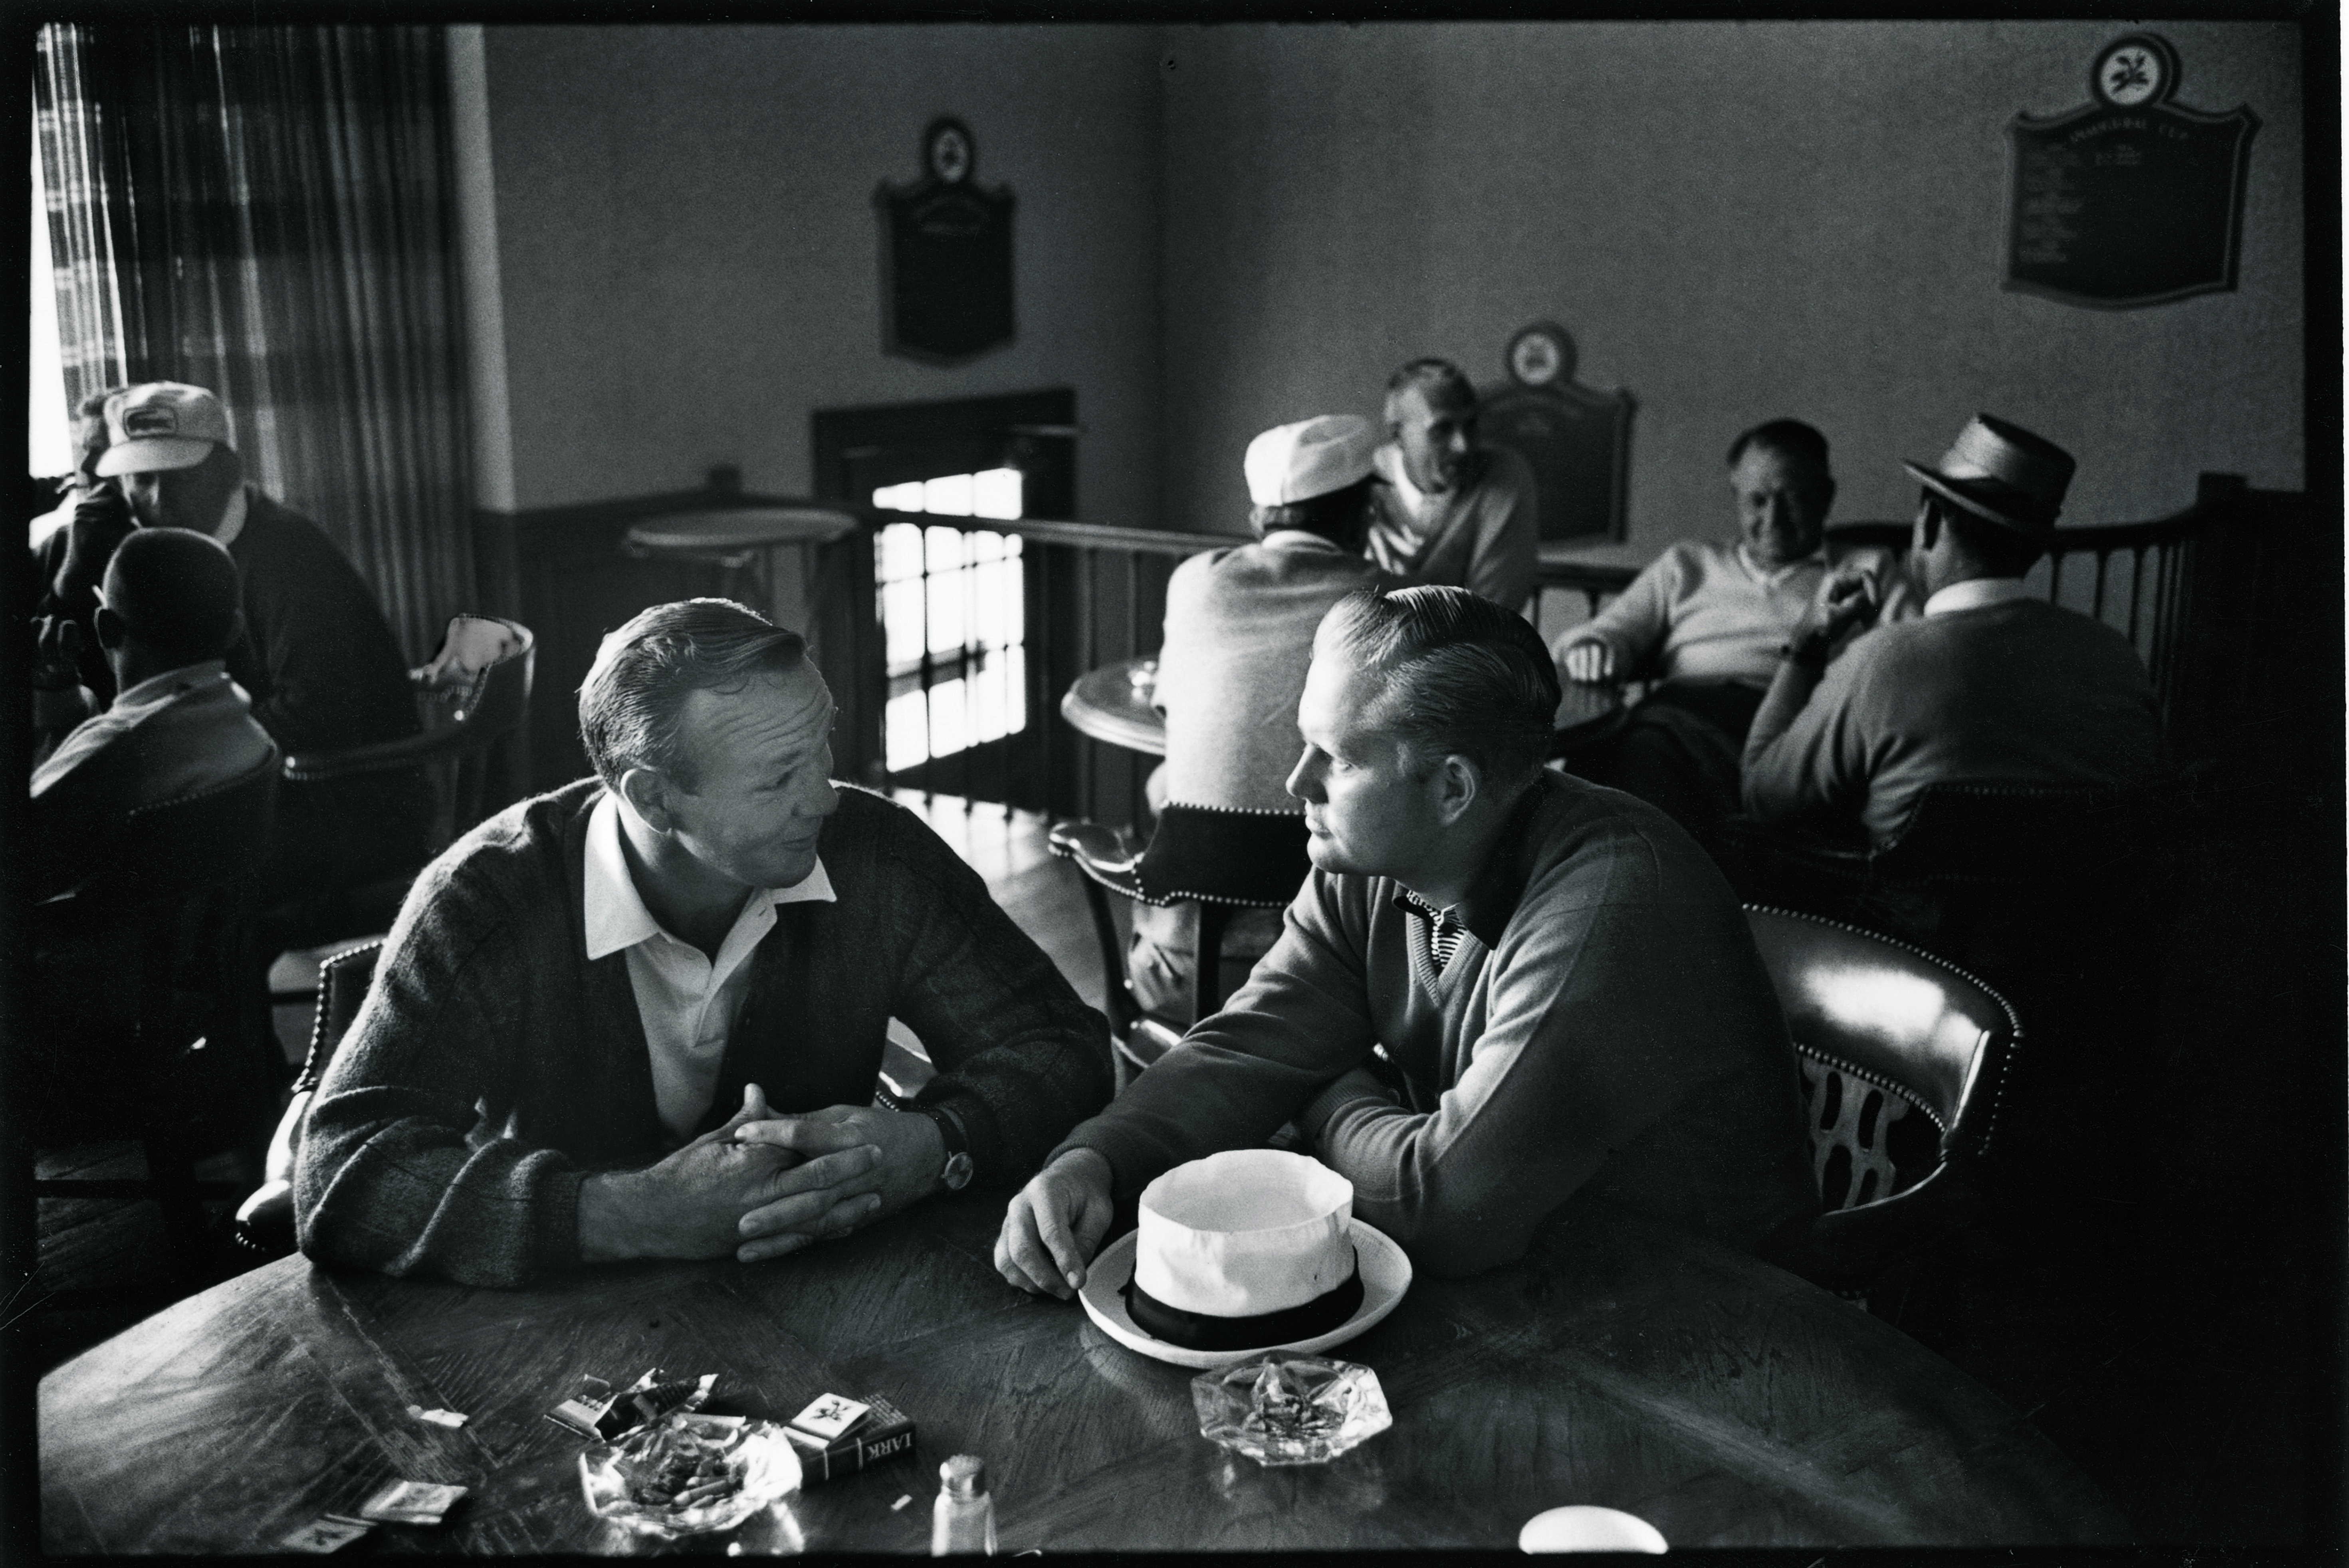 Arnold Palmer and Jack Nicklaus sitting at a table at Laurel Valley Country Club during the 1965 PGA Championship in Ligonier, Pa